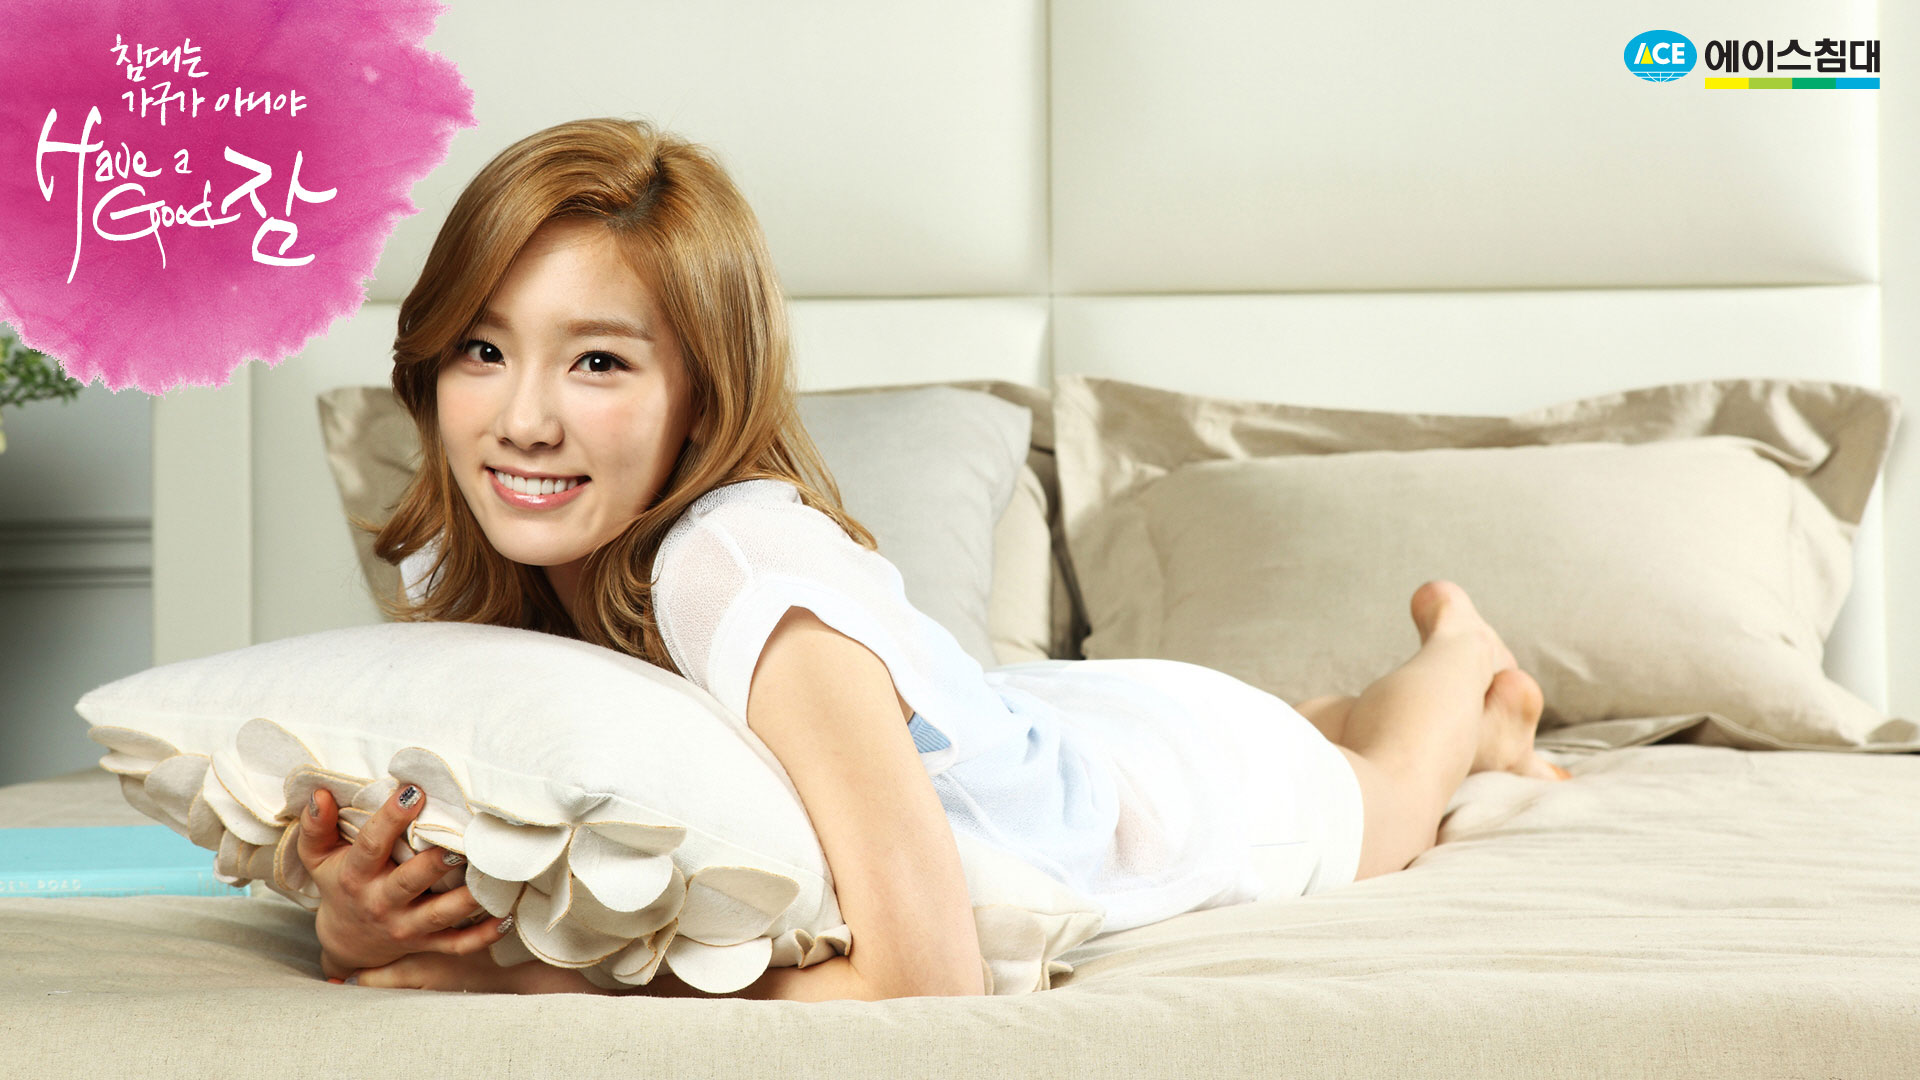 SNSD Taeyeon Ace Bed wallpaper